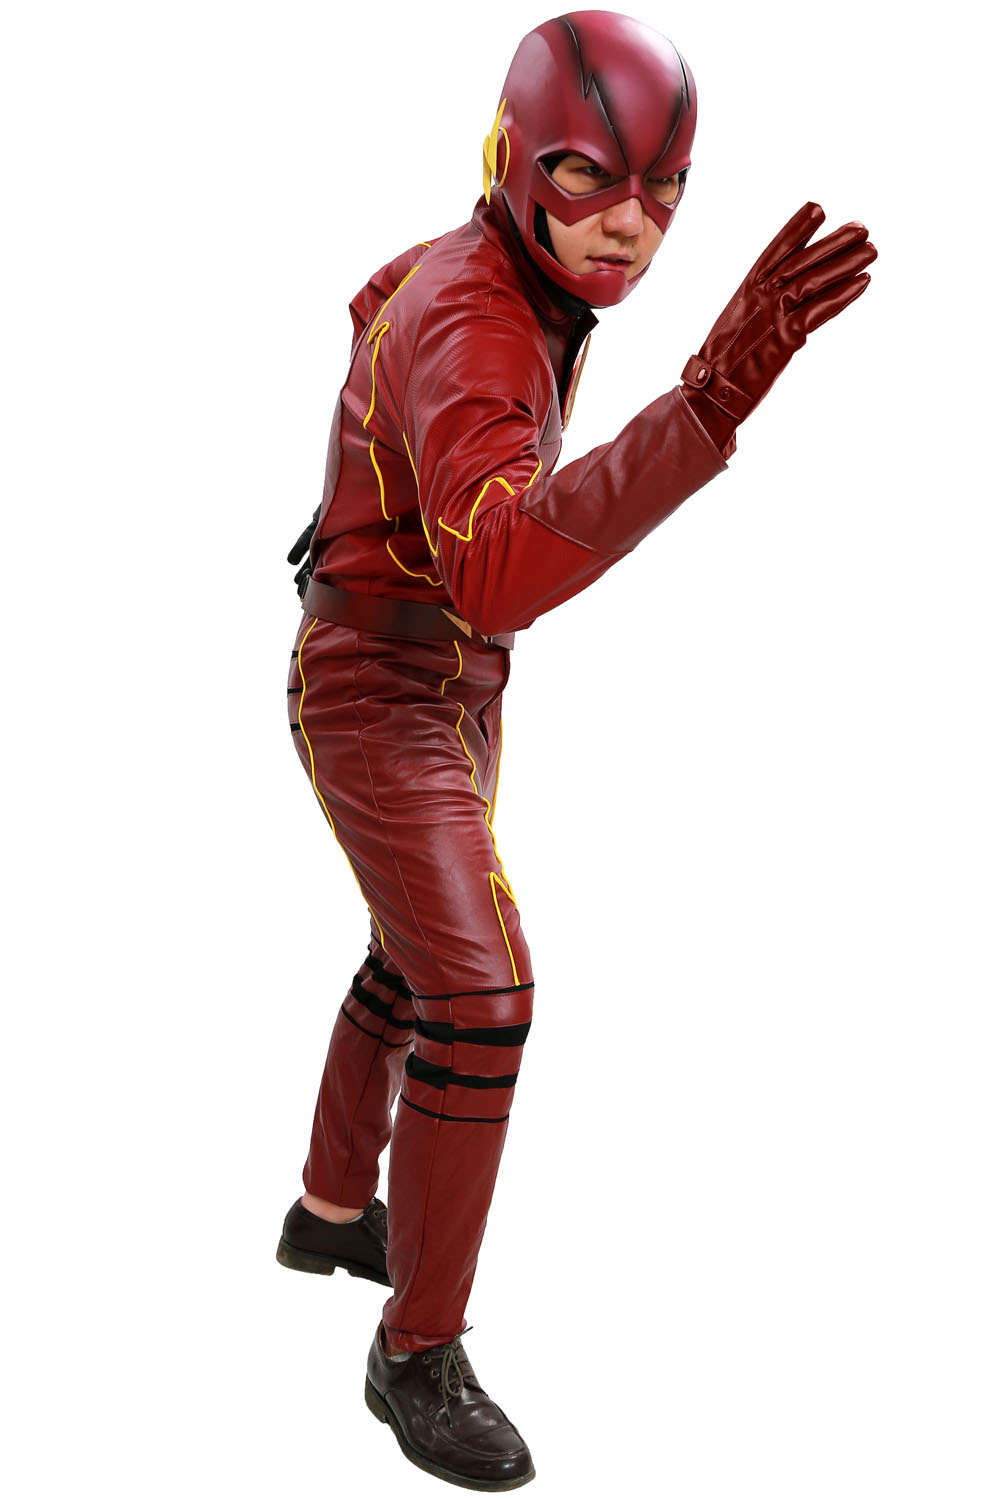 The Flash Costume Season 2 Suit Deluxe Red Leather Outfit With Chest Badge Barry Allen Cosplay Adult Christmas Disfraces Adultos